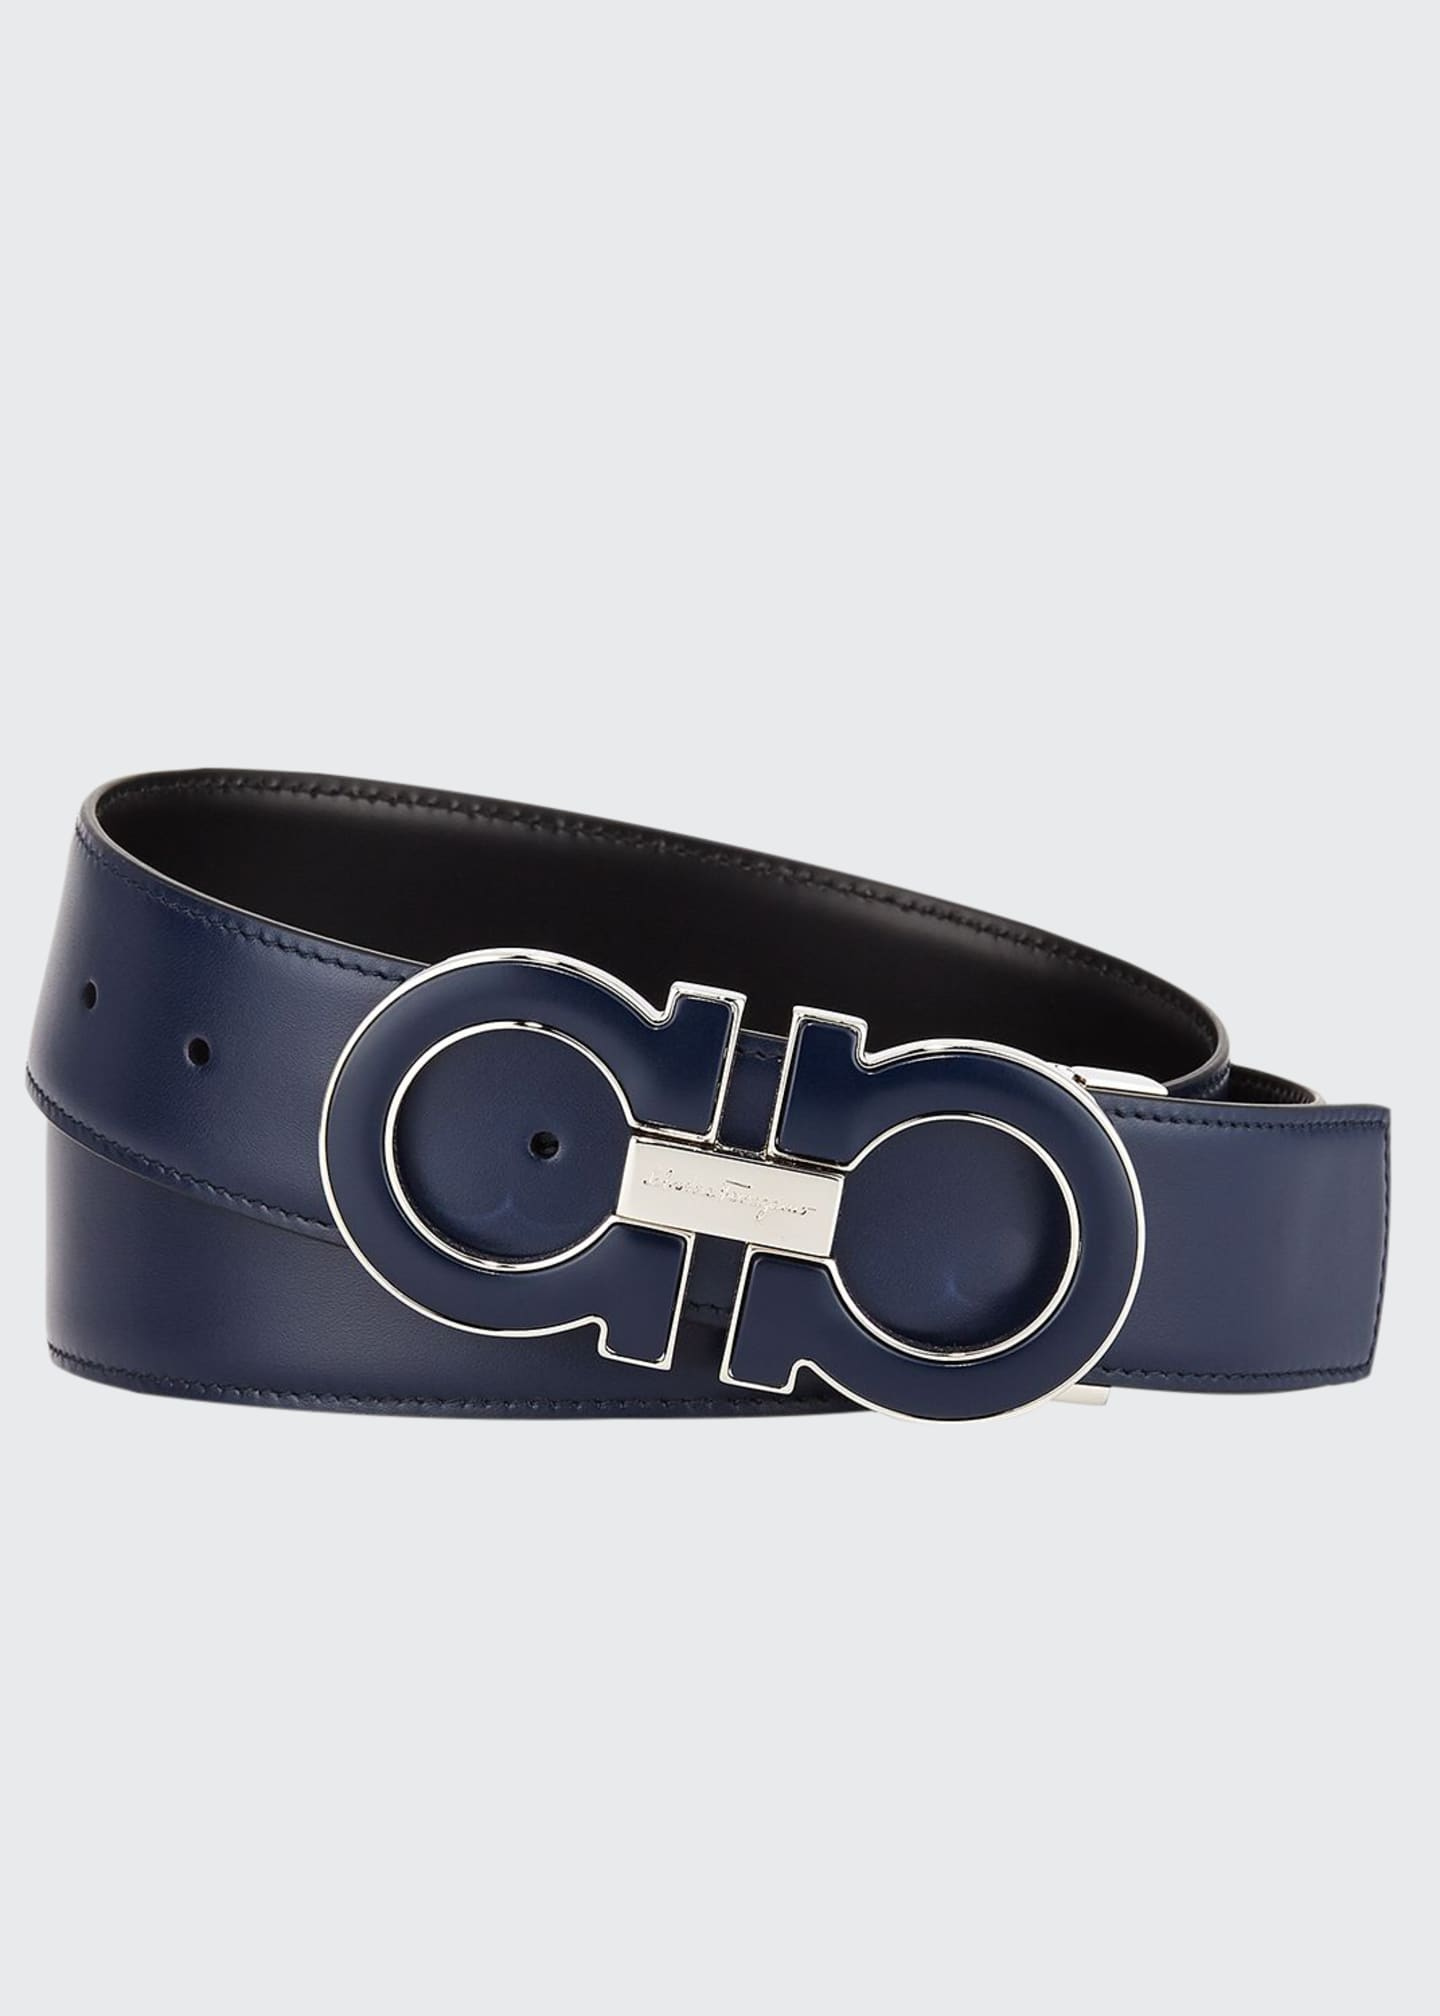 Image 1 of 2: Men's Smooth Calf Reversible Leather Belt